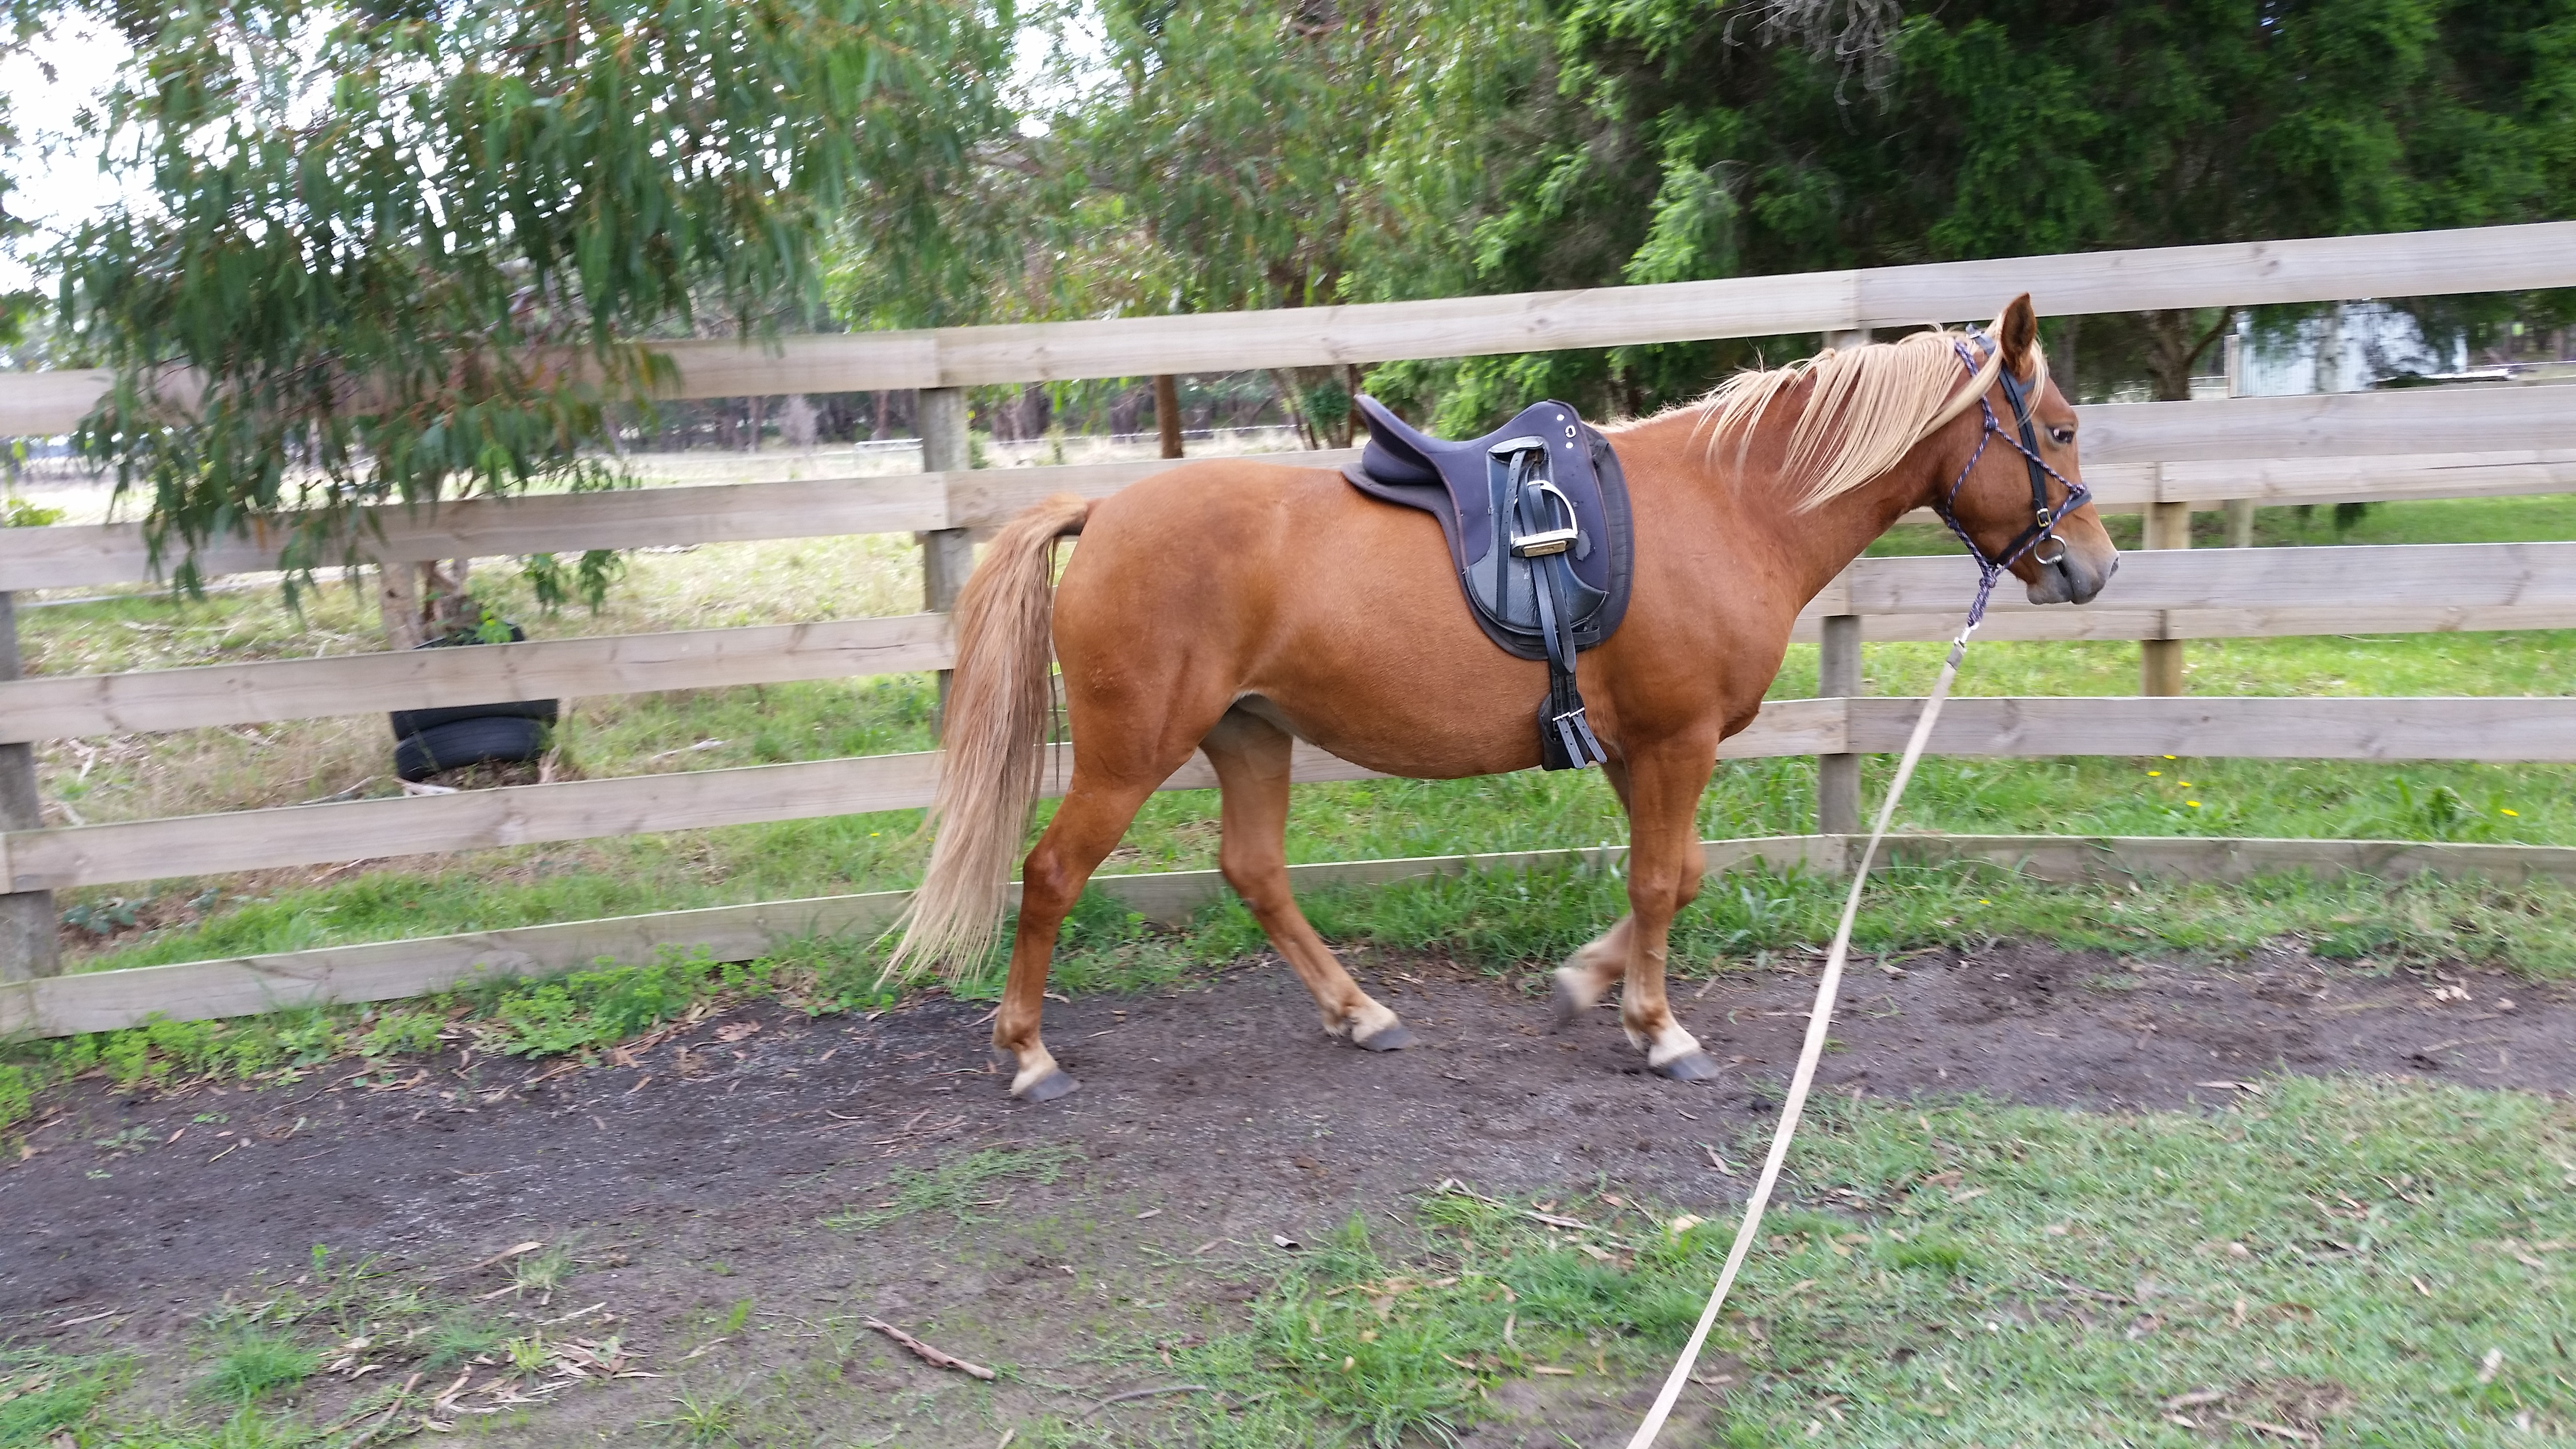 Alli - Arab x Halflinger, I have started her under saddle